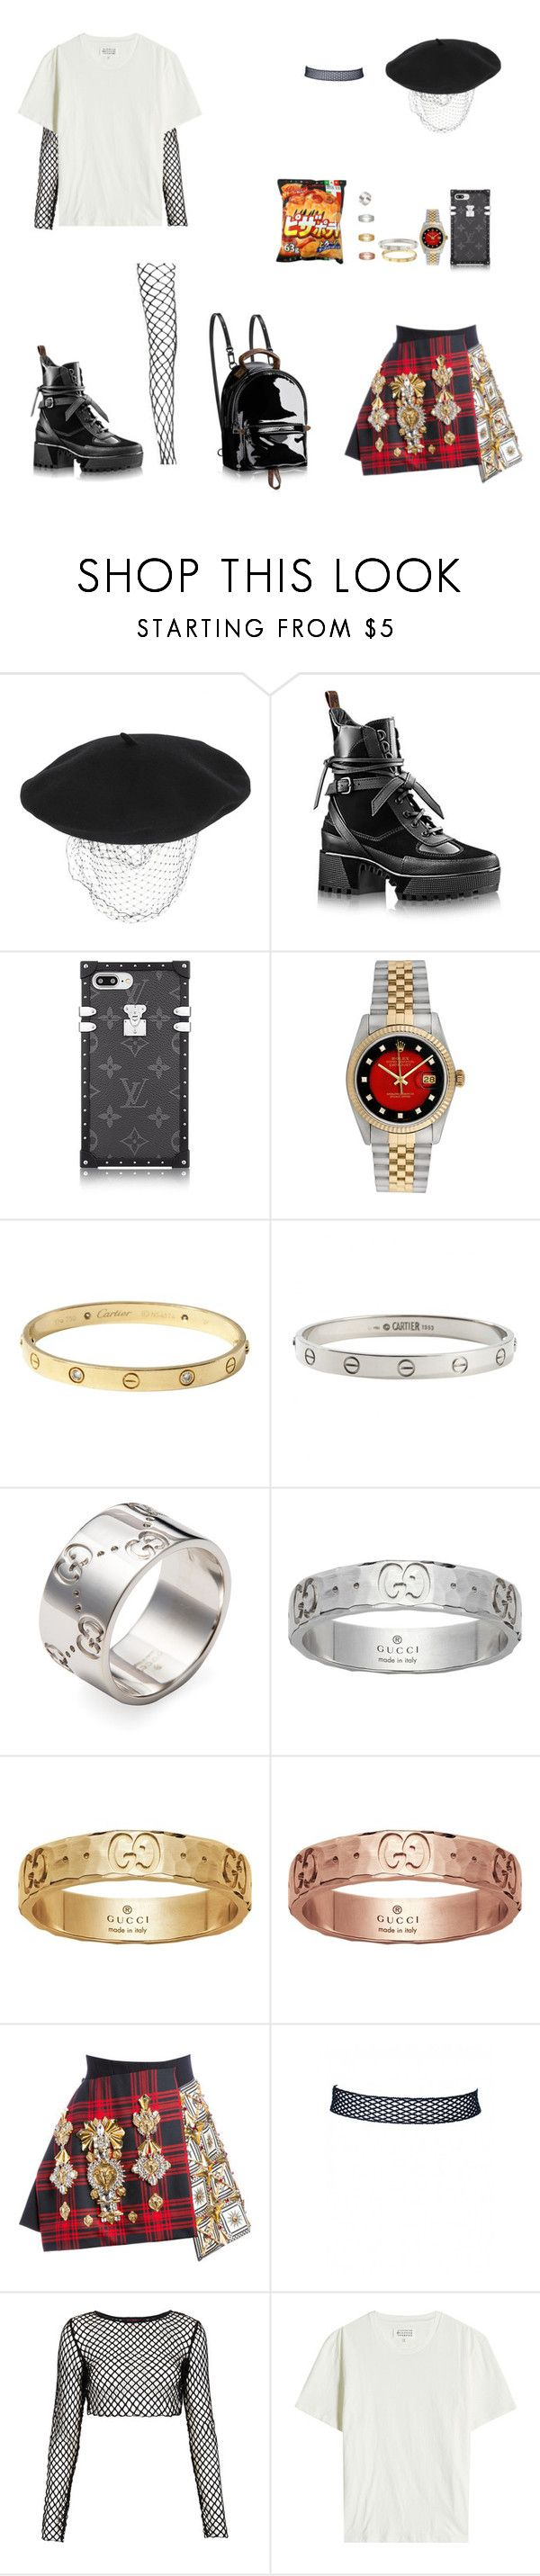 """""""Outfit #197"""" by kepl ❤ liked on Polyvore featuring Silver Spoon Attire, Louis Vuitton, Rolex, Cartier, Gucci, FAUSTO PUGLISI, Motel and Maison Margiela"""